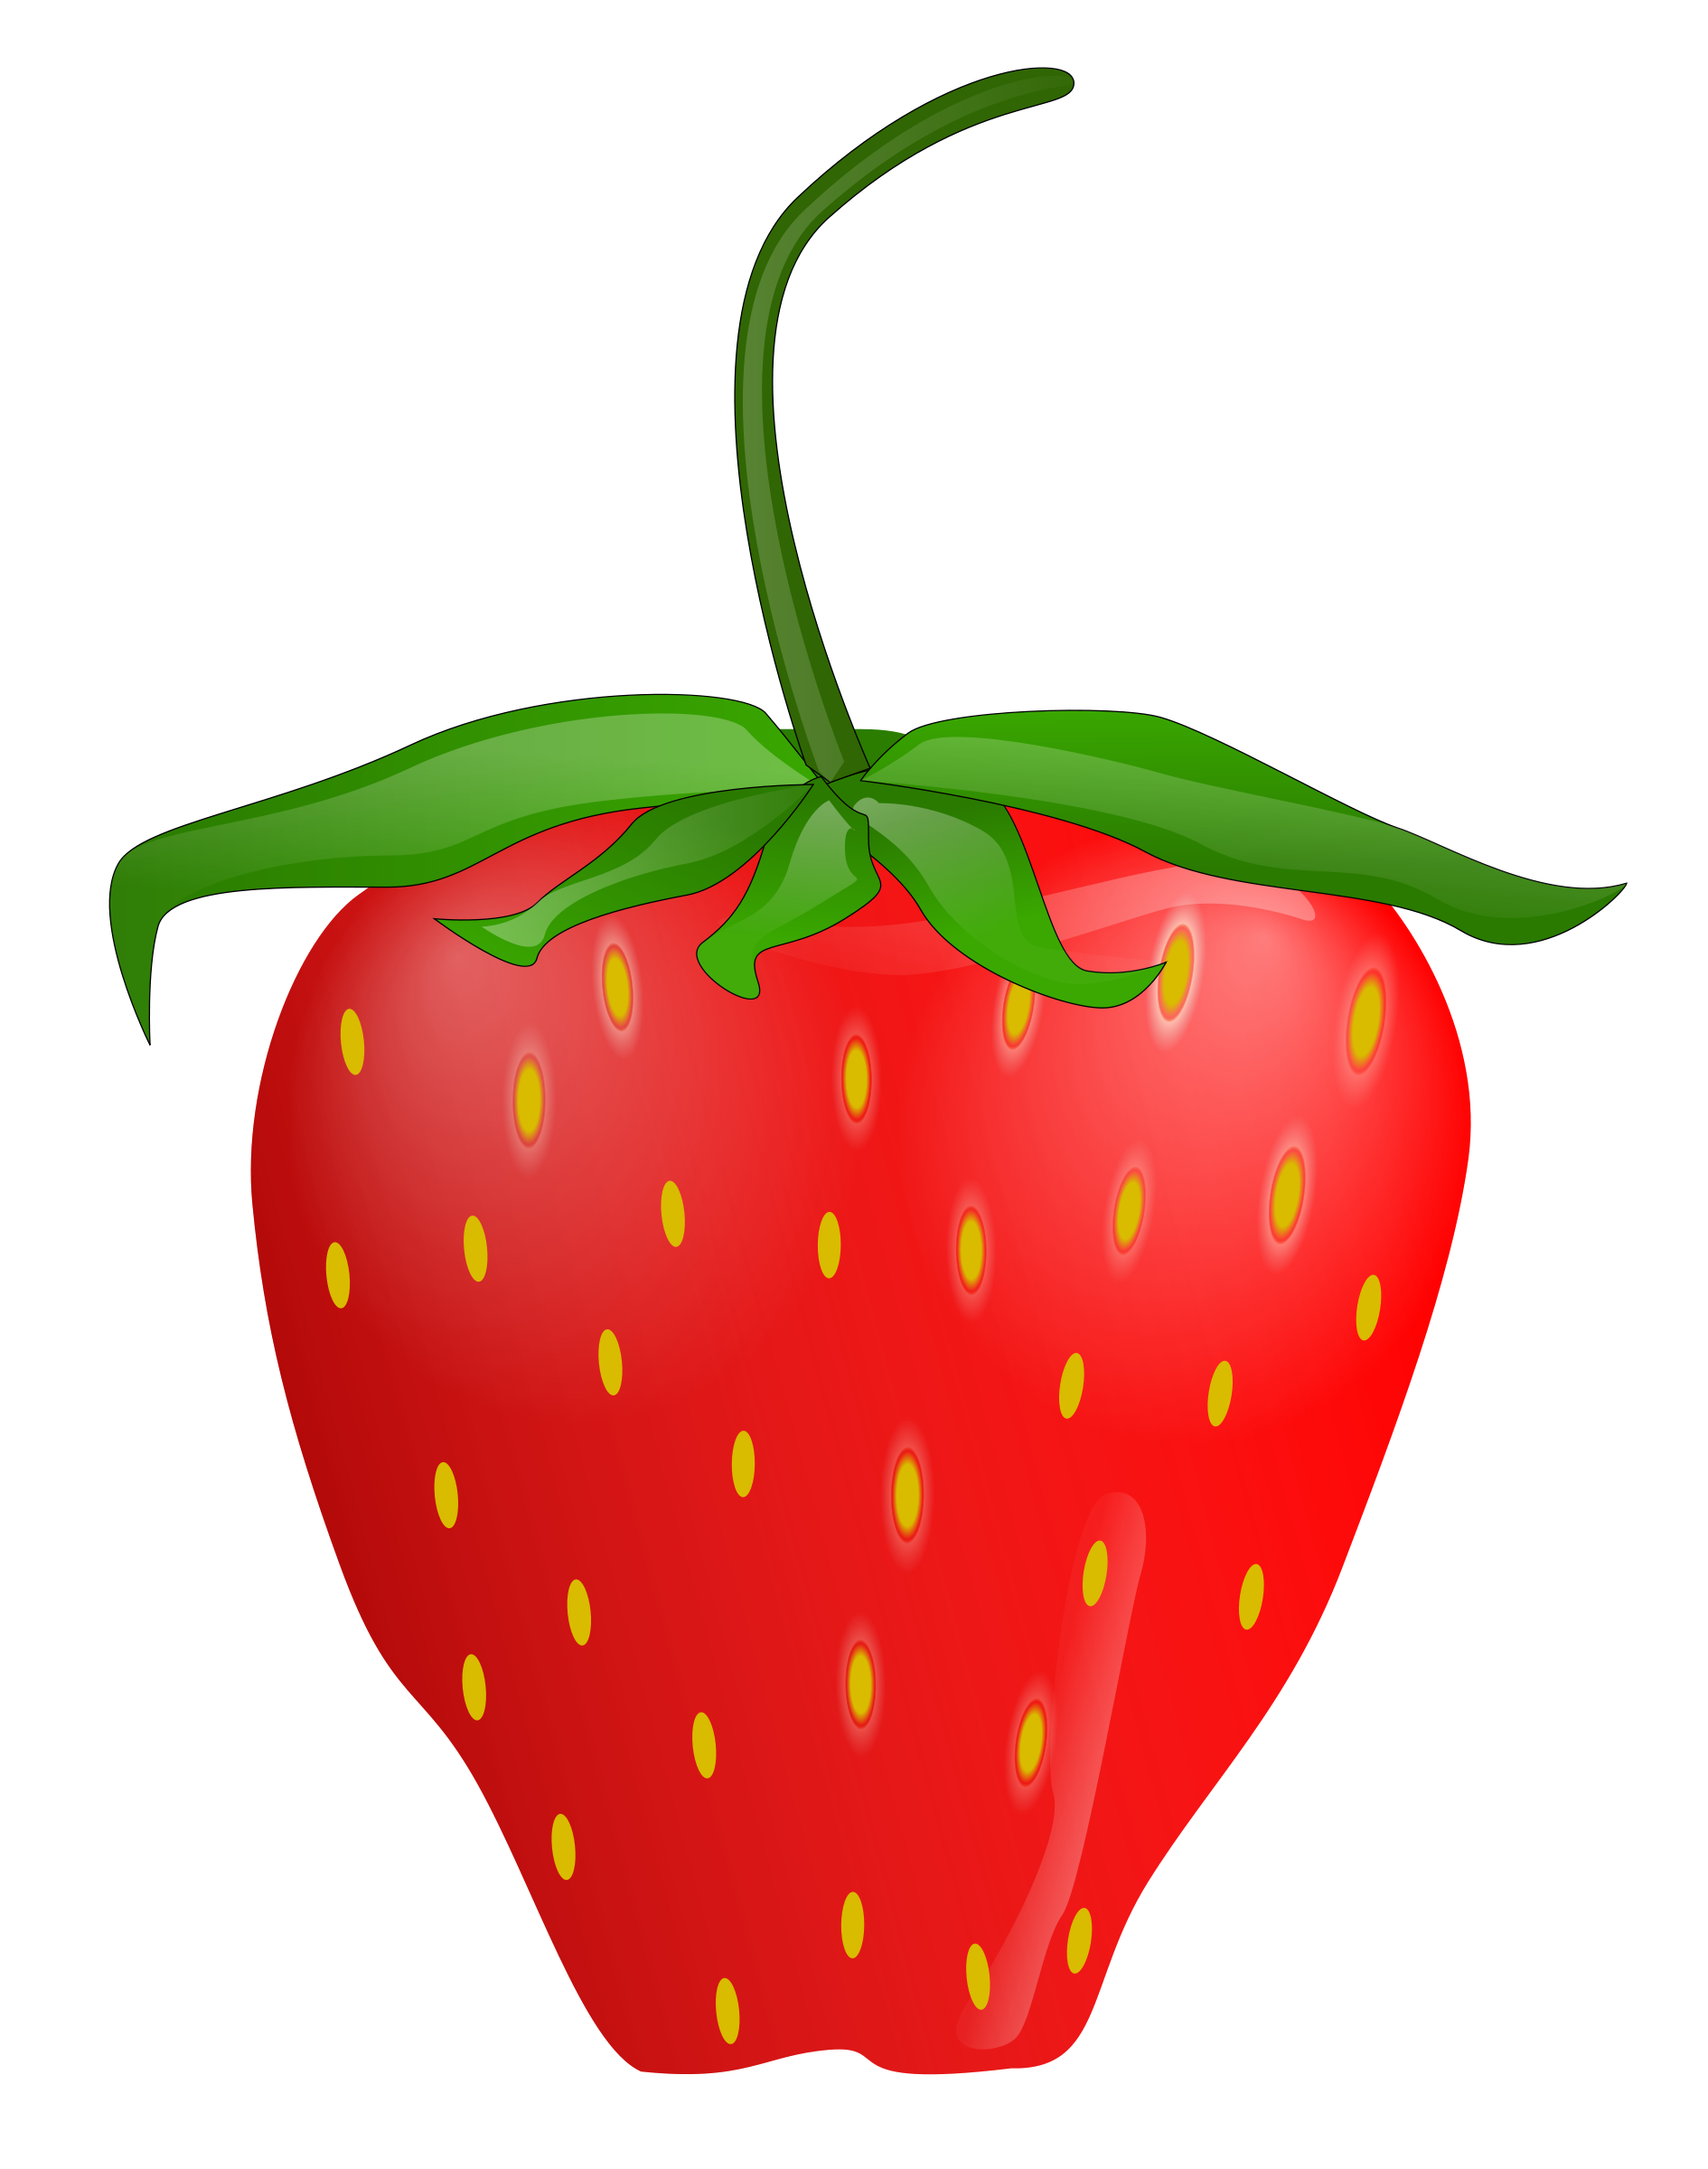 clipart transparent download Strawberry clip art free. Strawberries clipart